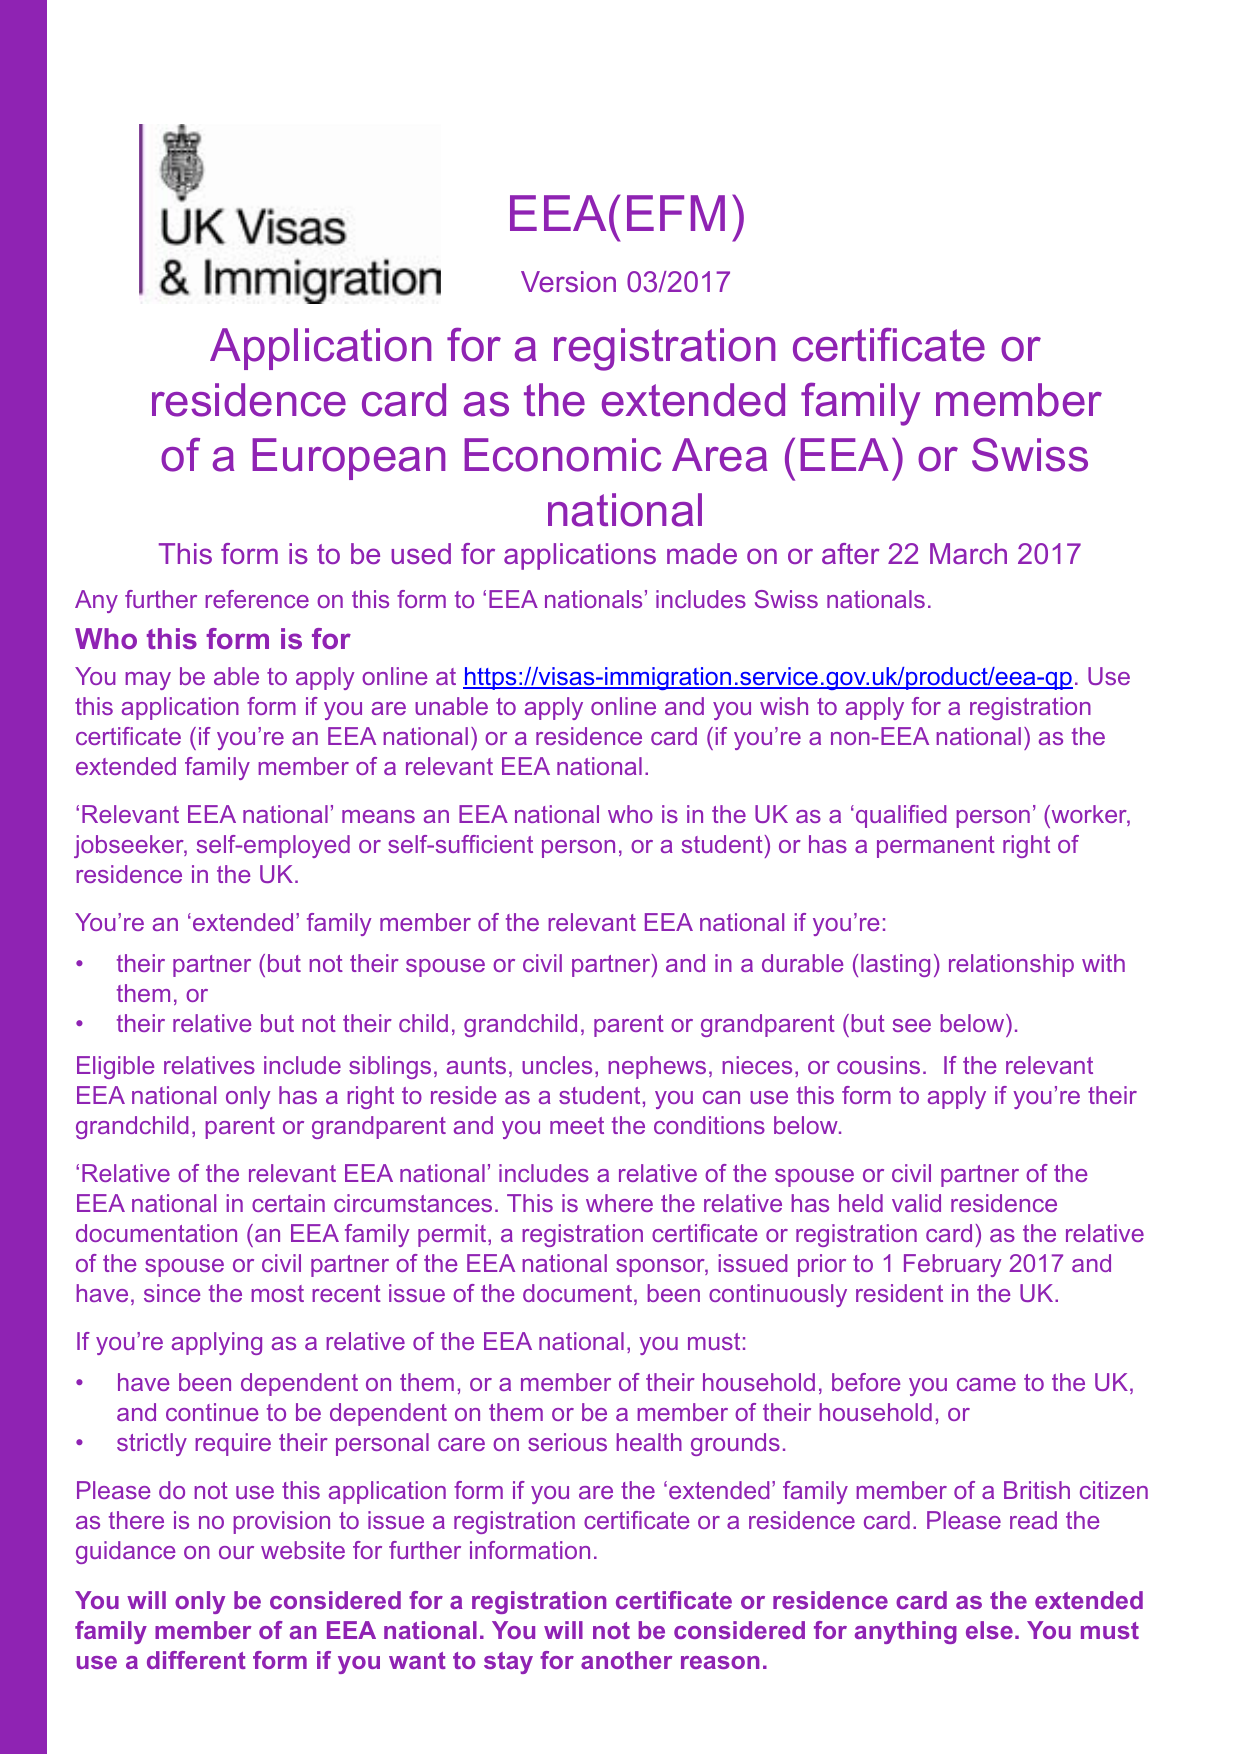 Form explorer attachment application for a registration certificate or residence card as the extended family member of an eea or swiss national form eea efm solutioingenieria Choice Image